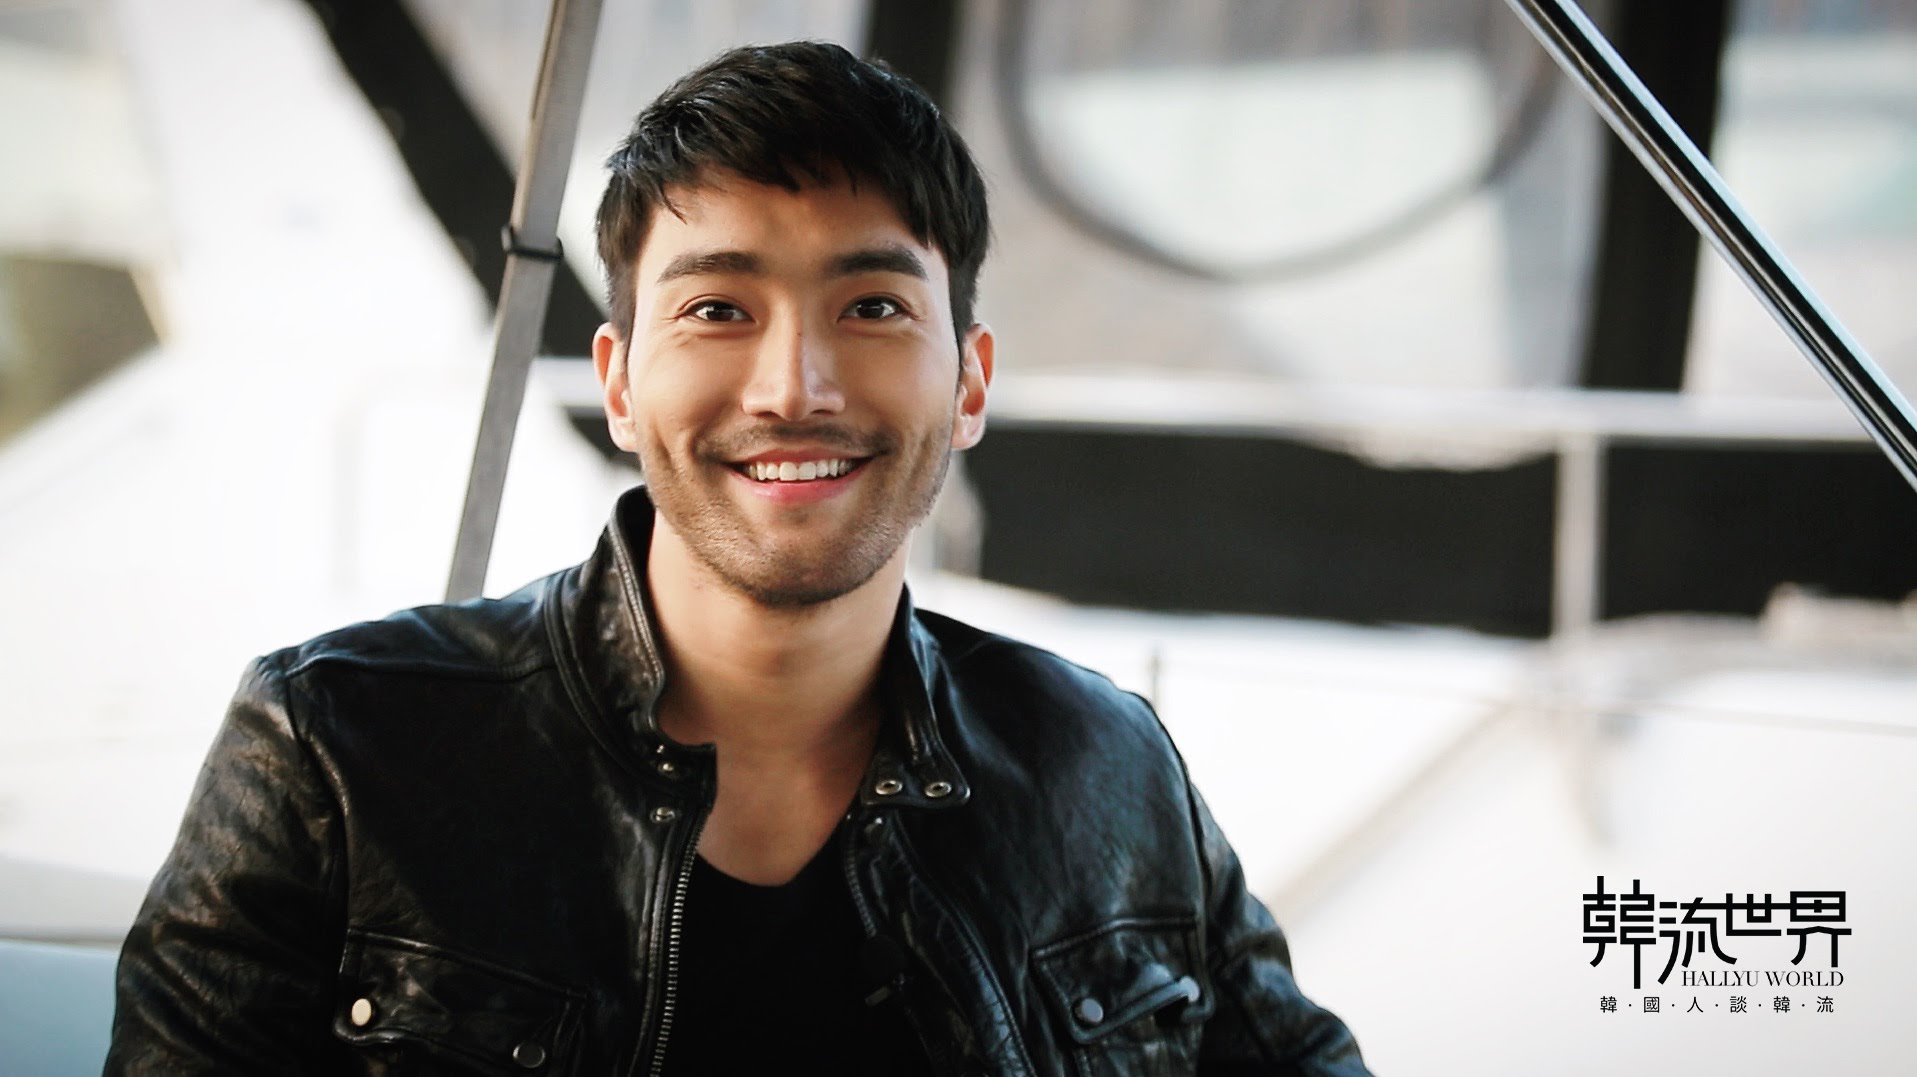 Super Junior's Choi Siwon Returns To Social Media And Shows Gratitude For The Support He's Received